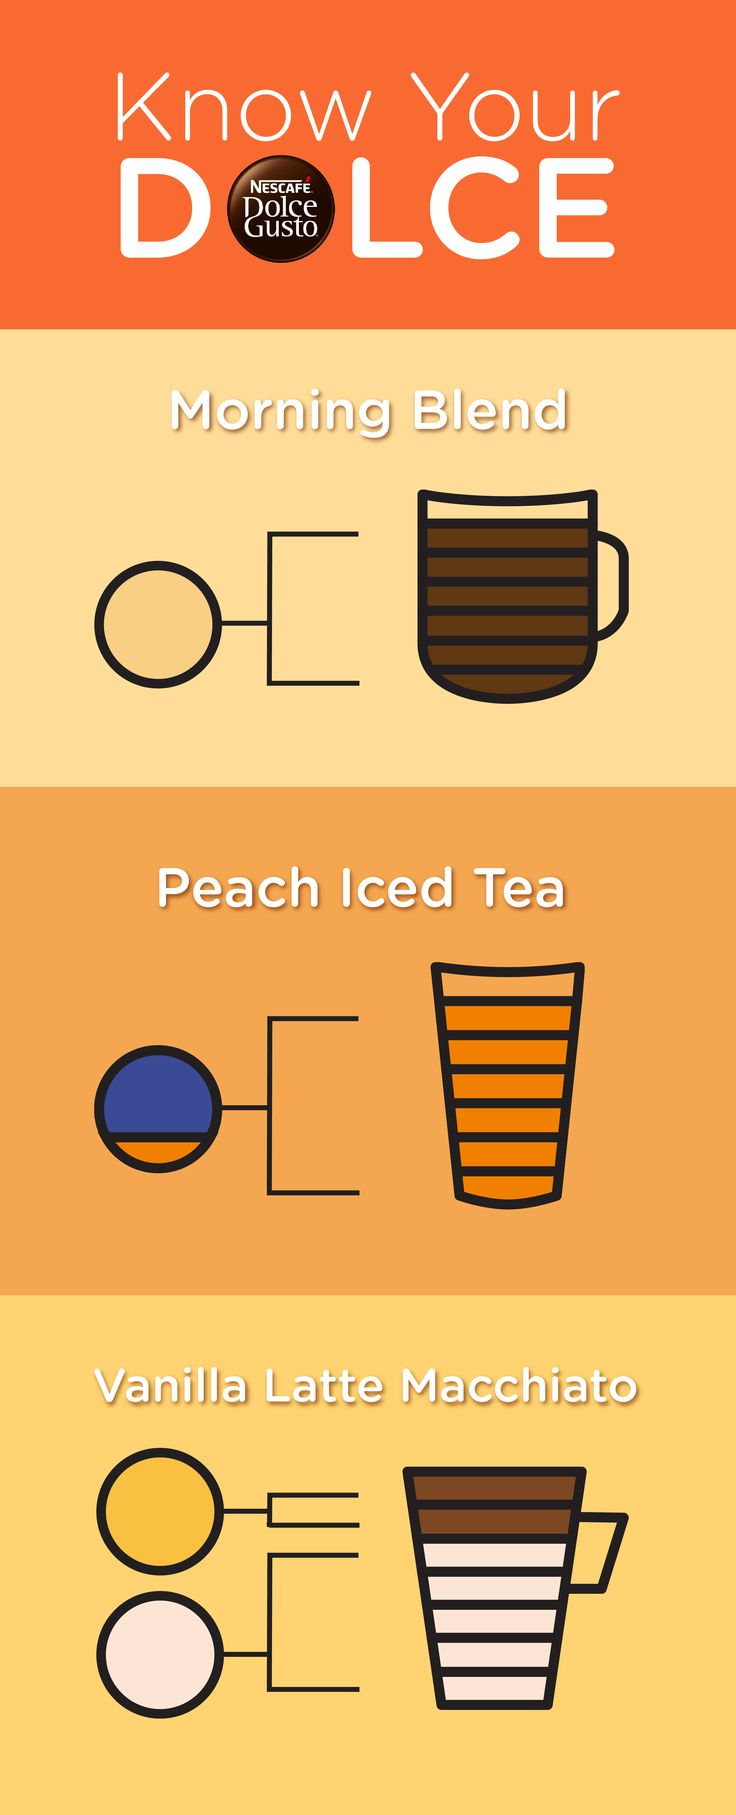 Dolce Gusto has a tasty assortment of flavors picked just for you. From a perfect morning blend to a peach iced tea and a vanilla latte macchiato – we got you covered.